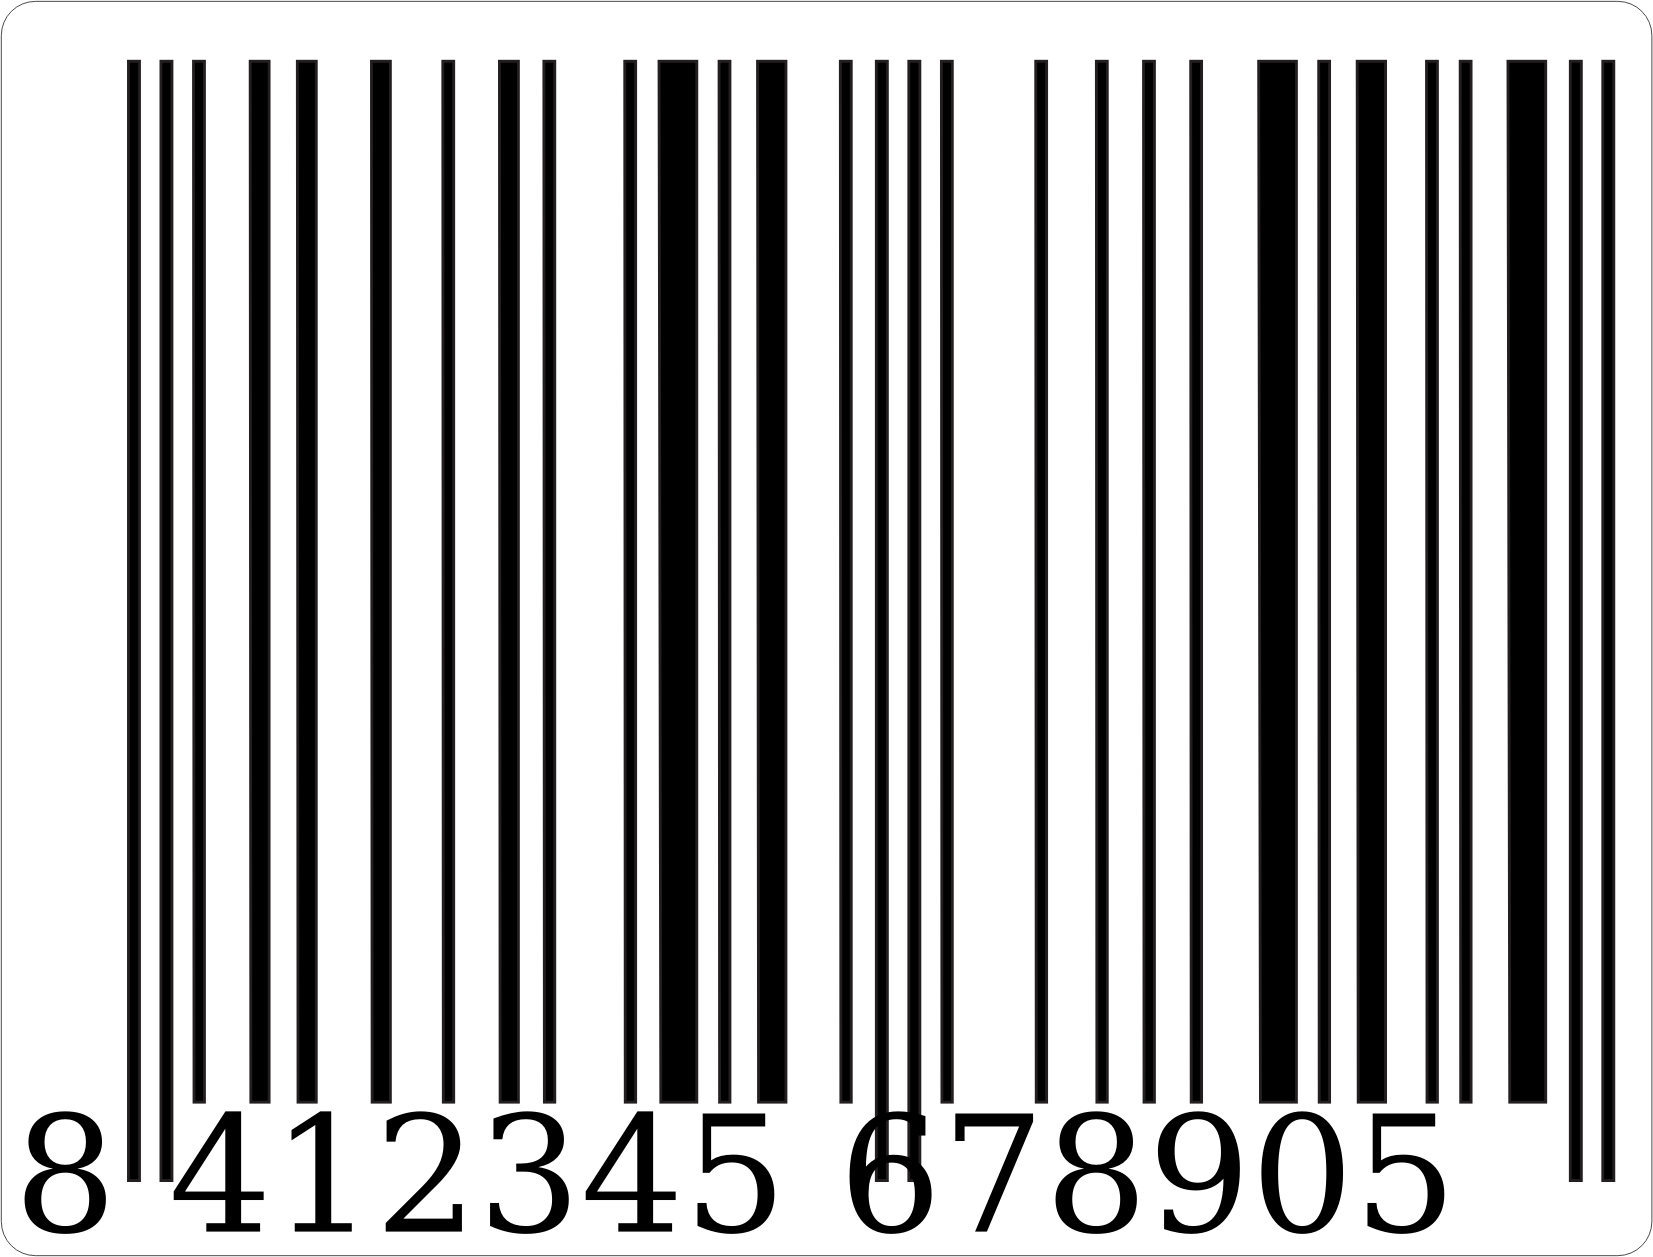 Barcode clipart special Manorito (PNG) IMAGE barcodebandw Clipart